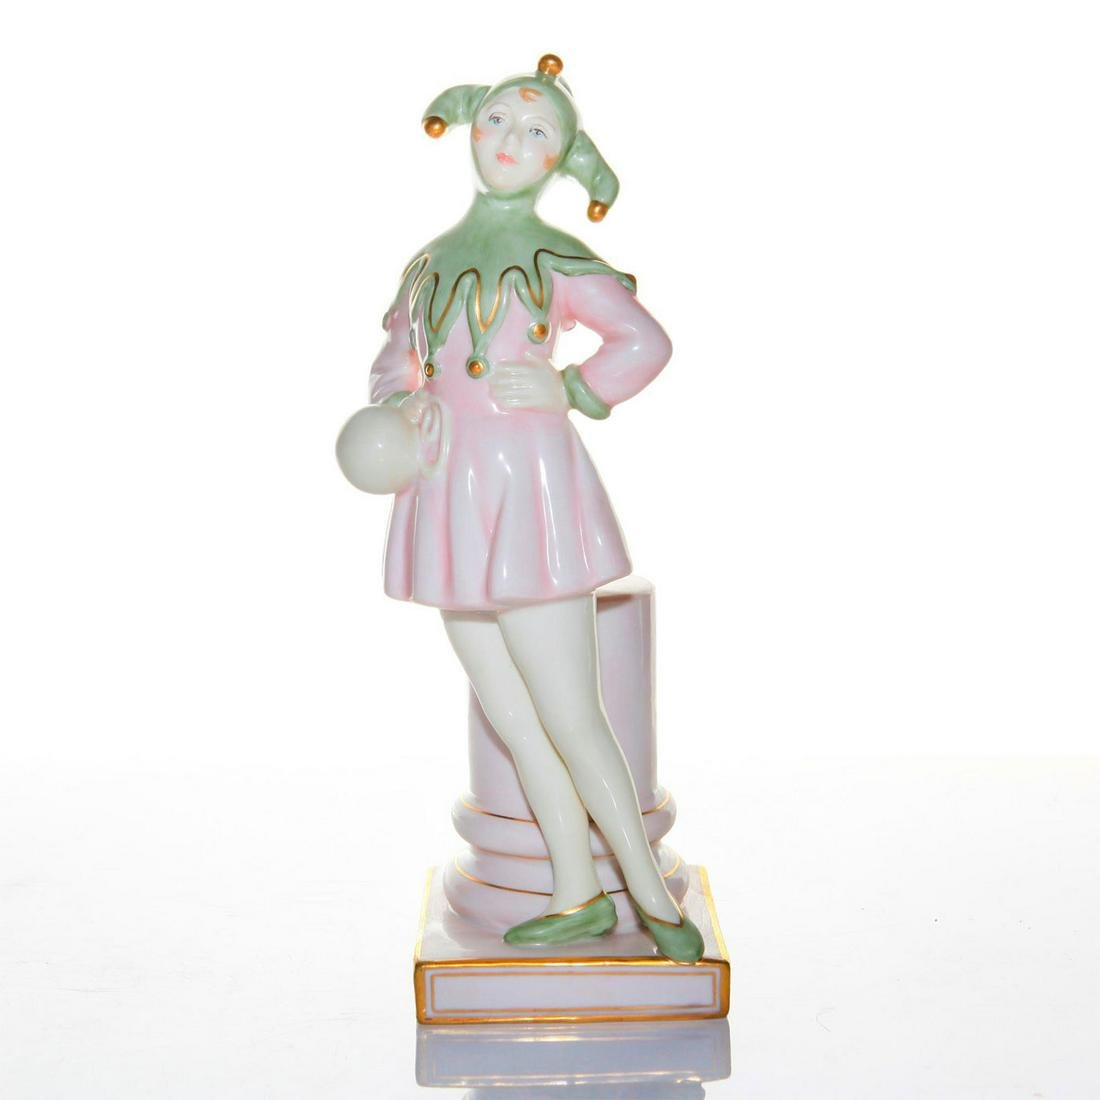 ROYAL DOULTON FIGURINE, LADY JESTER HN3924